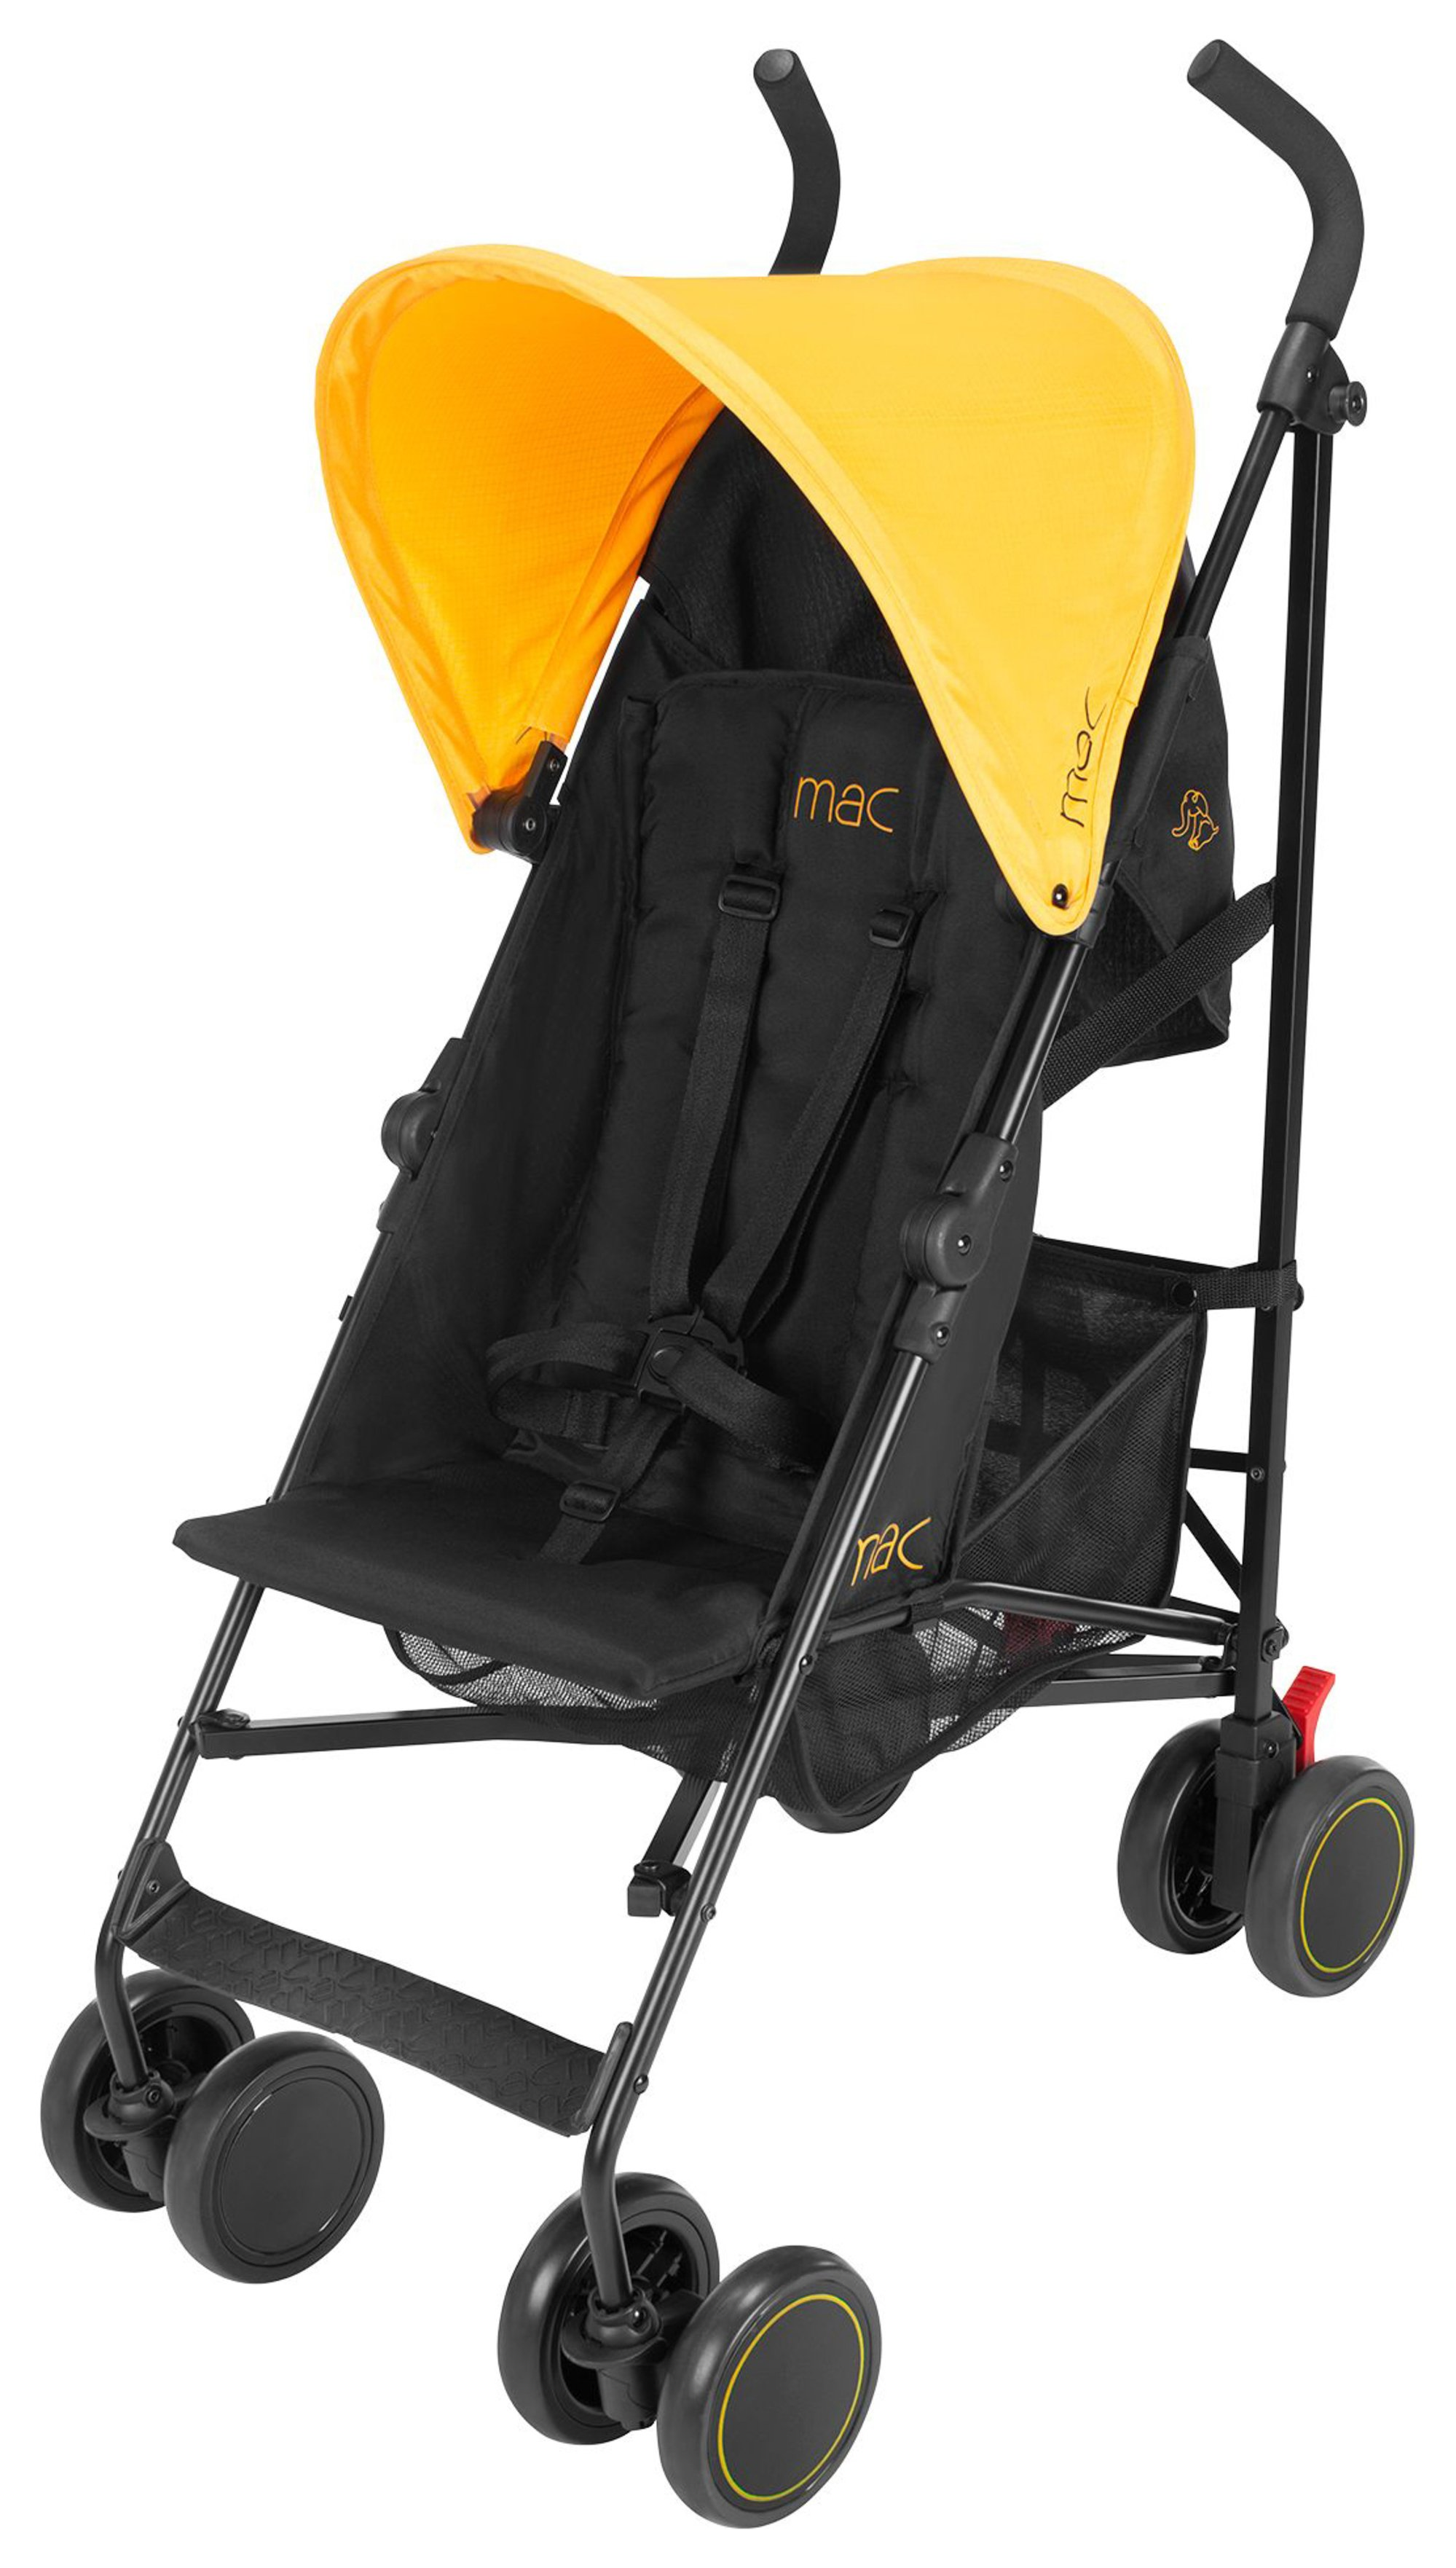 Maclaren Stroller Uk Reviews Mac By Maclaren Black Marigold M1 Pushchair Reviews